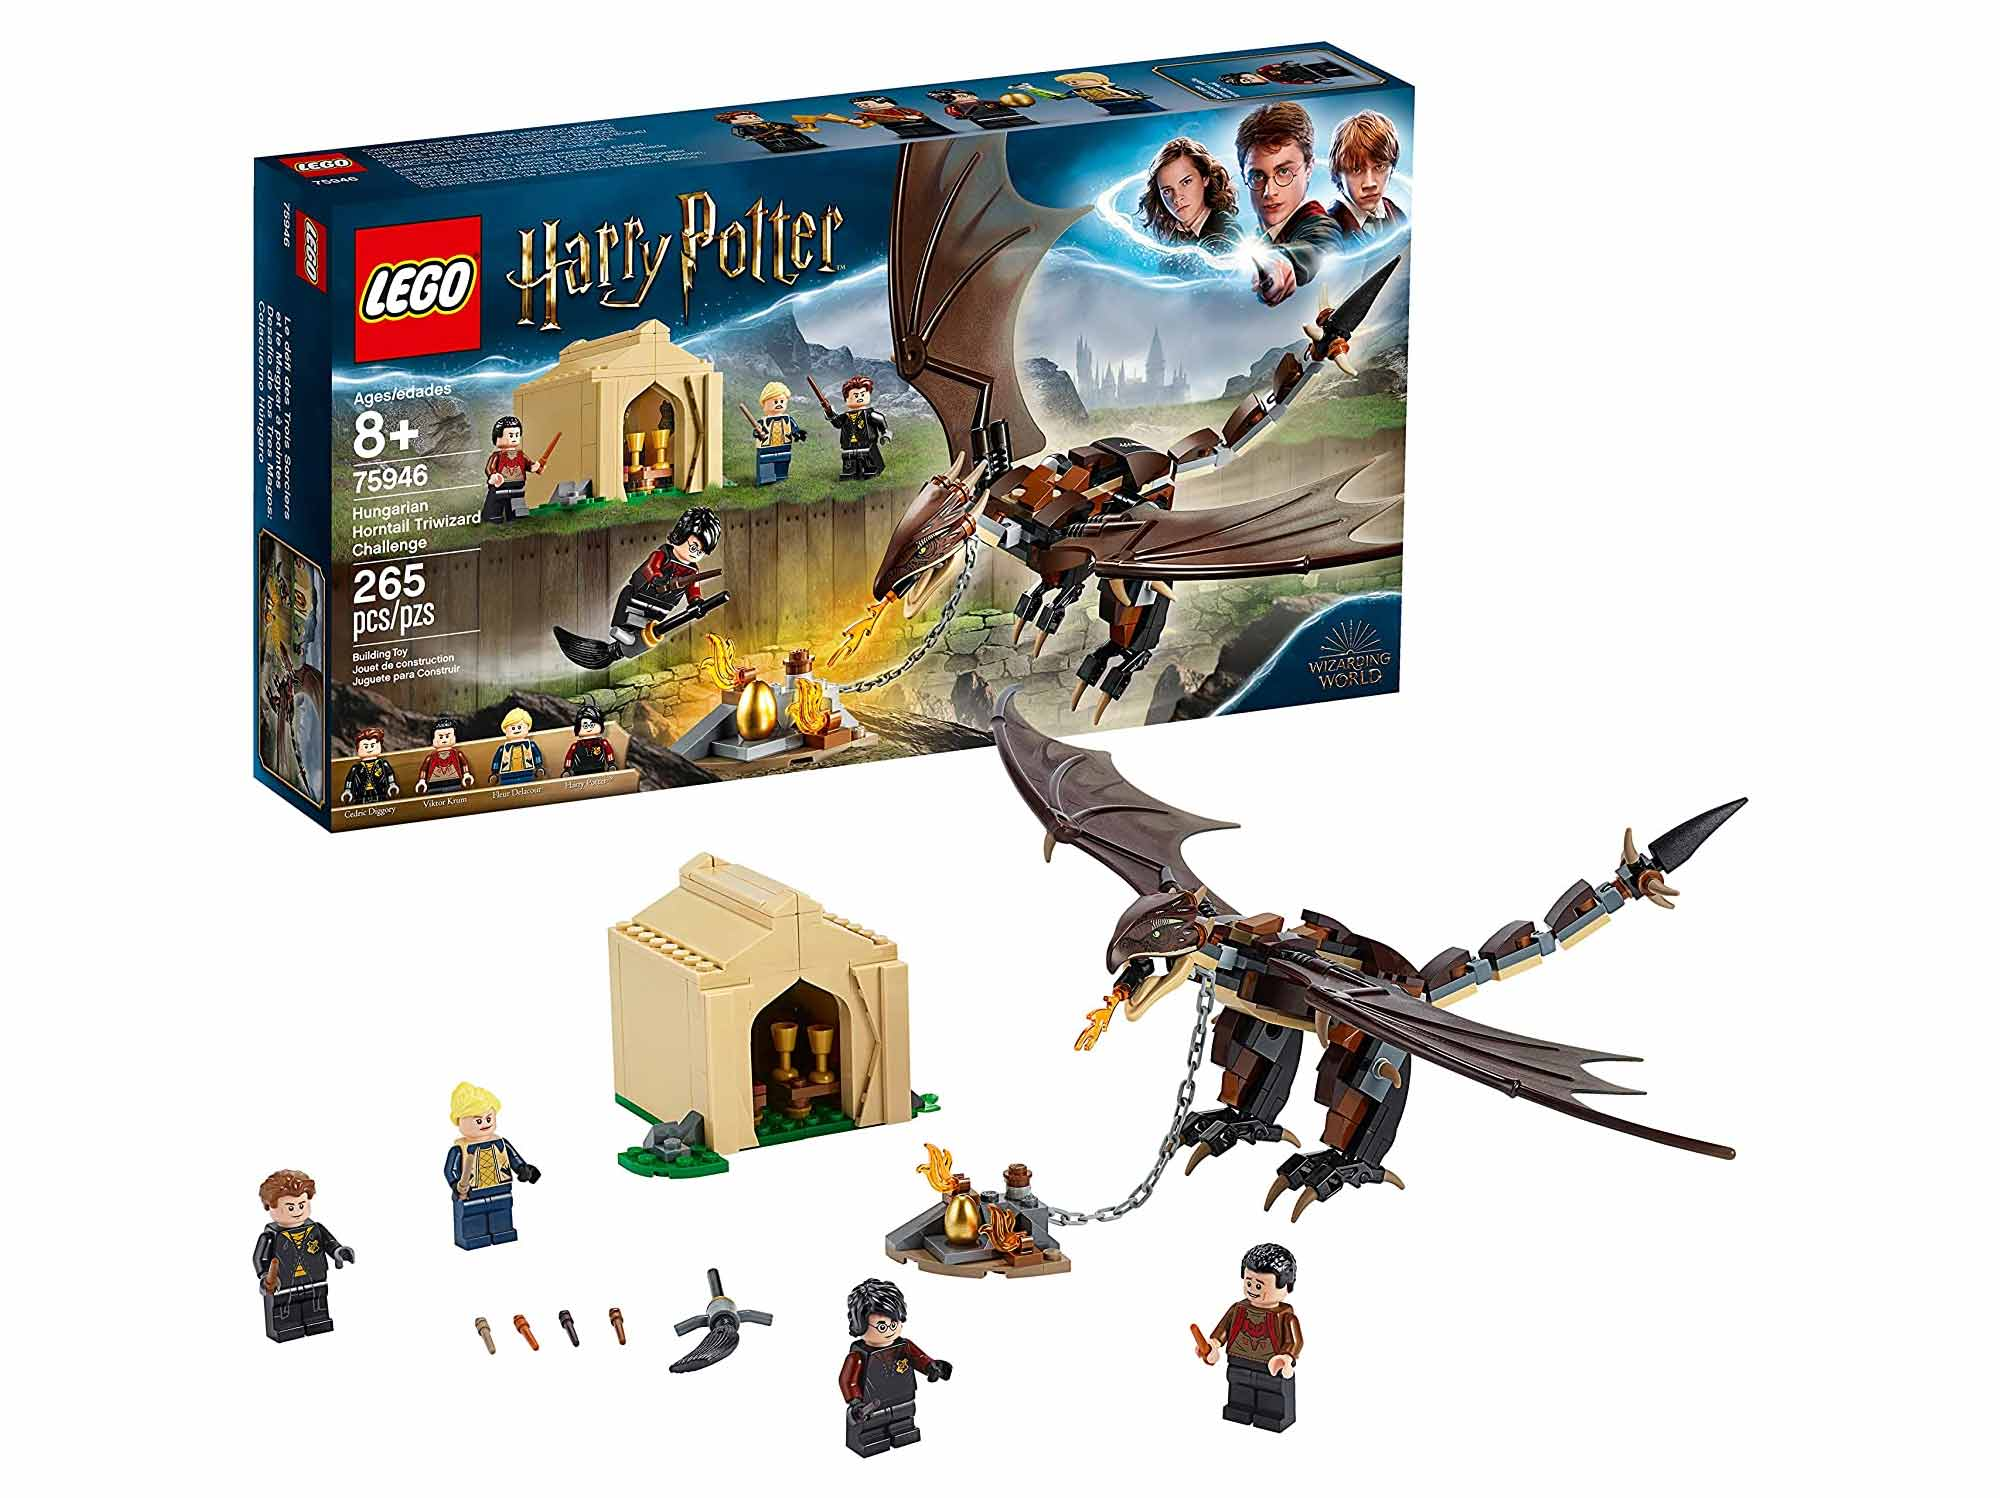 LEGO Harry Potter and The Goblet of Fire Hungarian Horntail Triwizard Challenge Building Kit